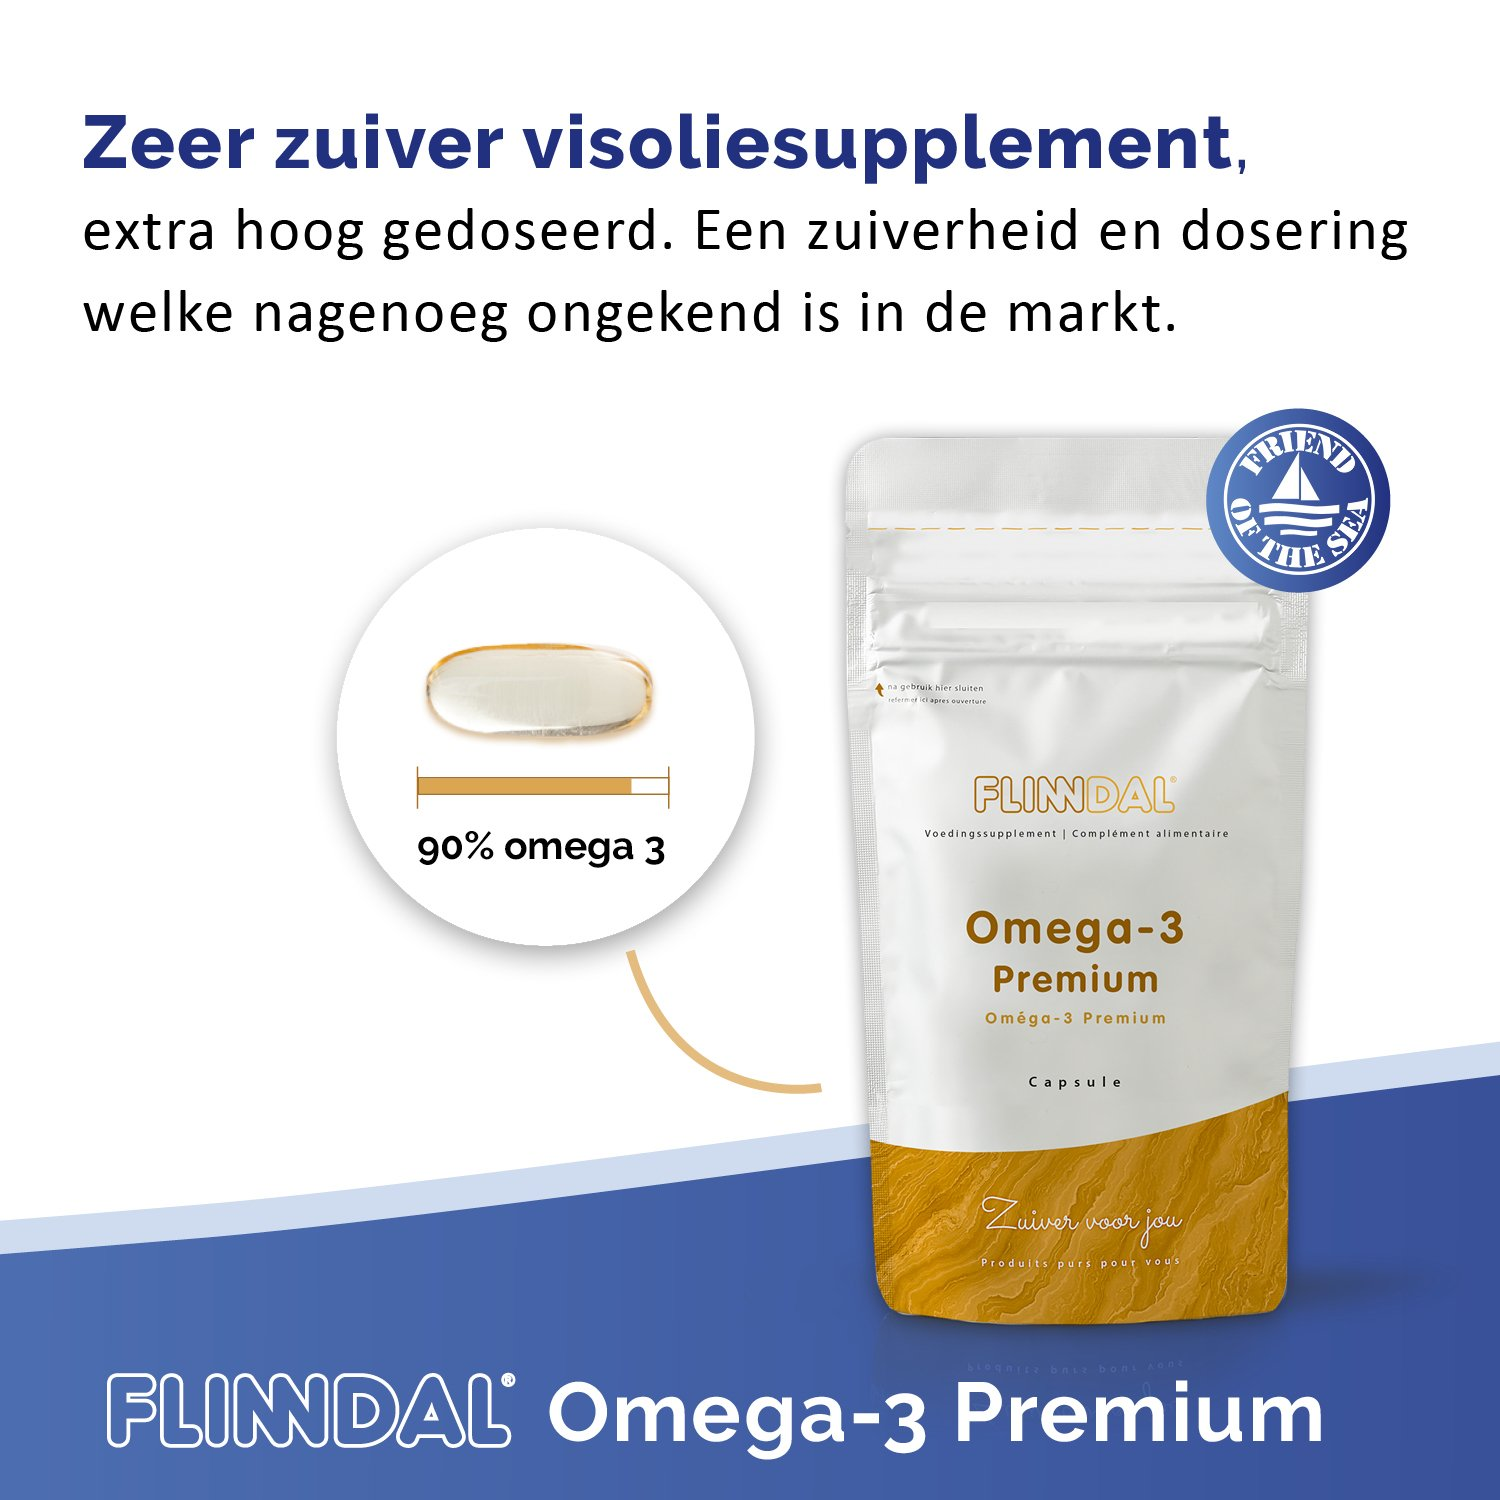 Omega-3 visoliesupplement